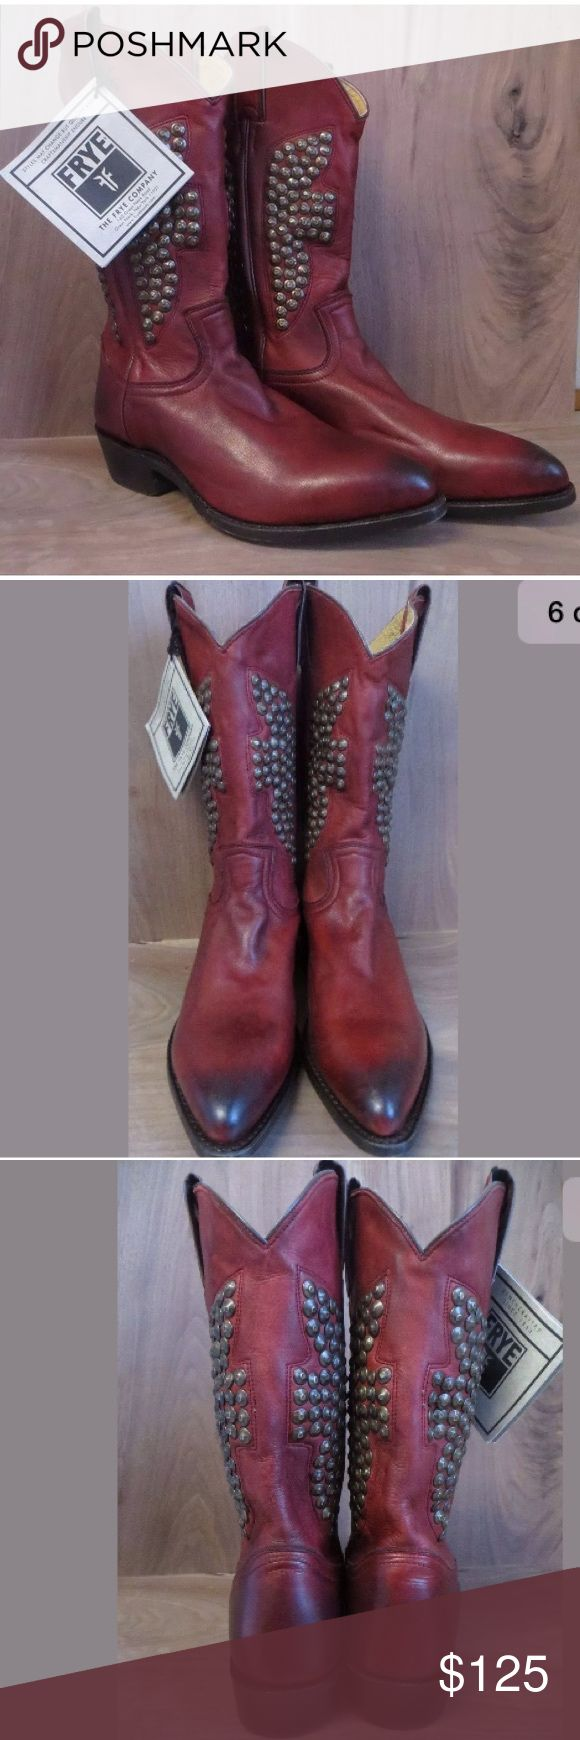 1000 Ideas About Red Cowboy Boots On Pinterest Old